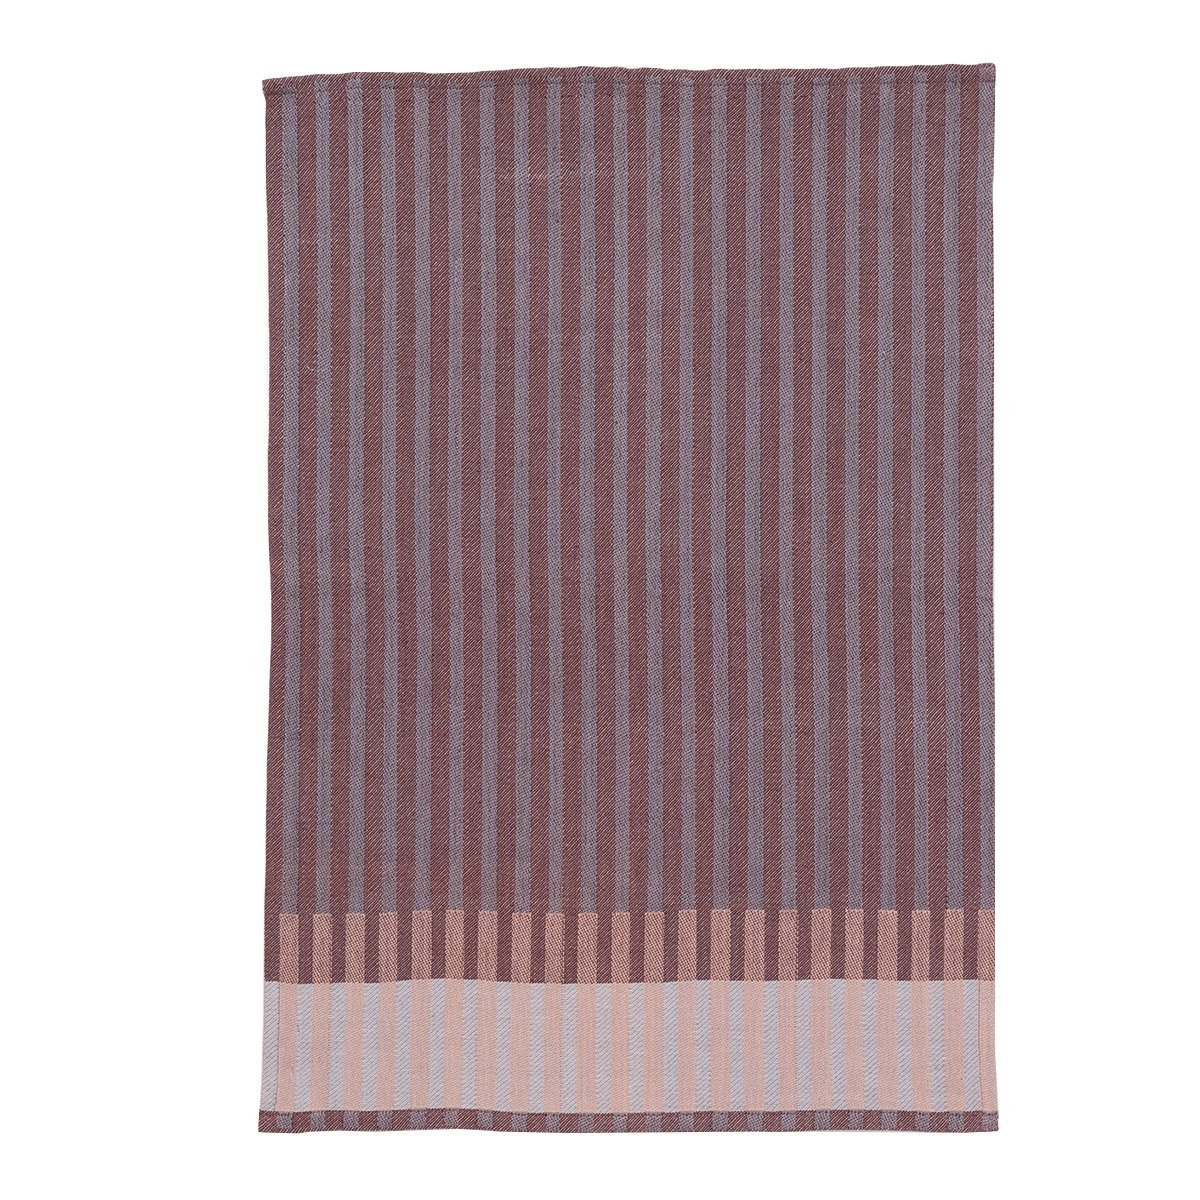 Ferm Living Grain Jacquard Theedoek - Bordeaux